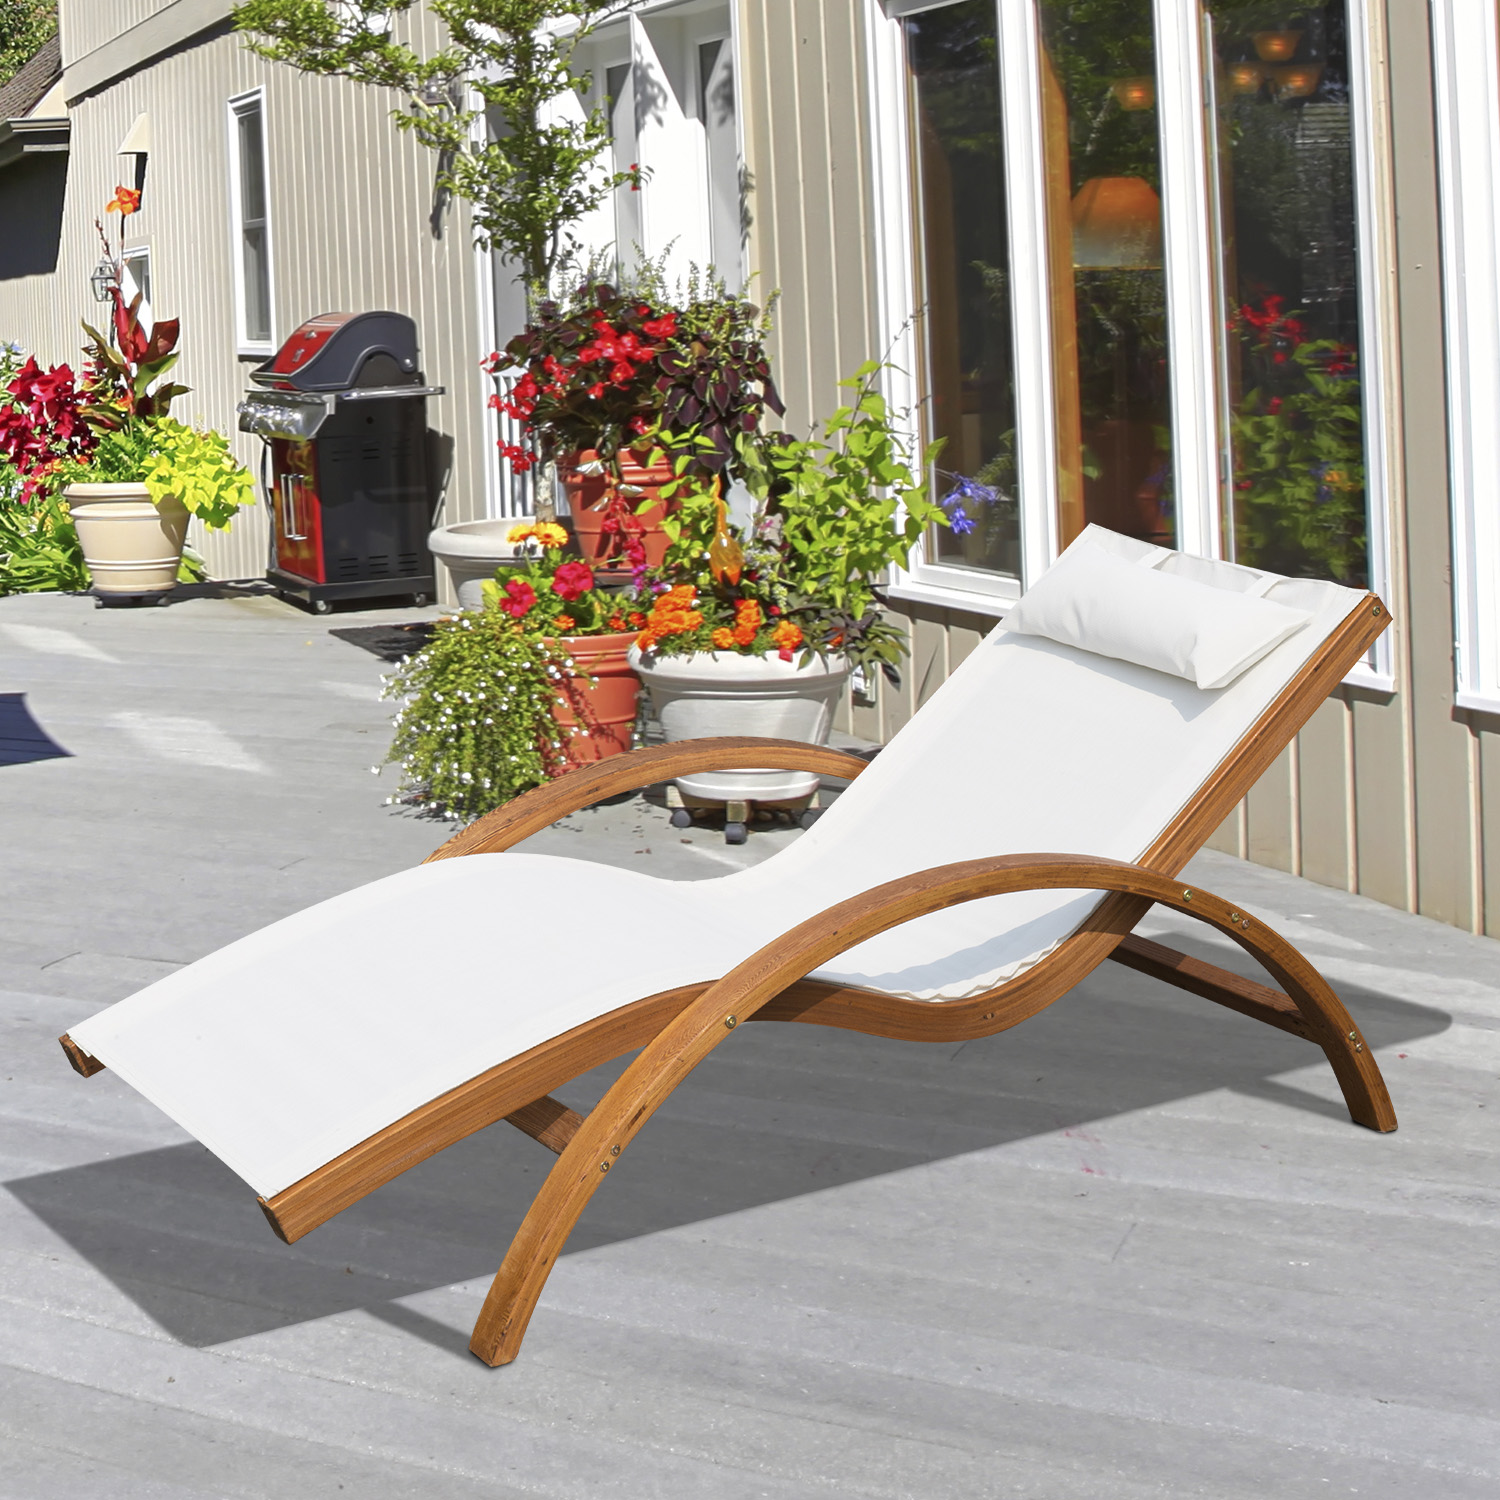 Image of CAD $179.99 Outsunny Outdoor Wood Sling Chaise Lounge Reclining Garden Mesh Lounger Patio Chair with Headrest Cream / Wooden Sun Seat Backyard w/ Pillow Canada 25093584688